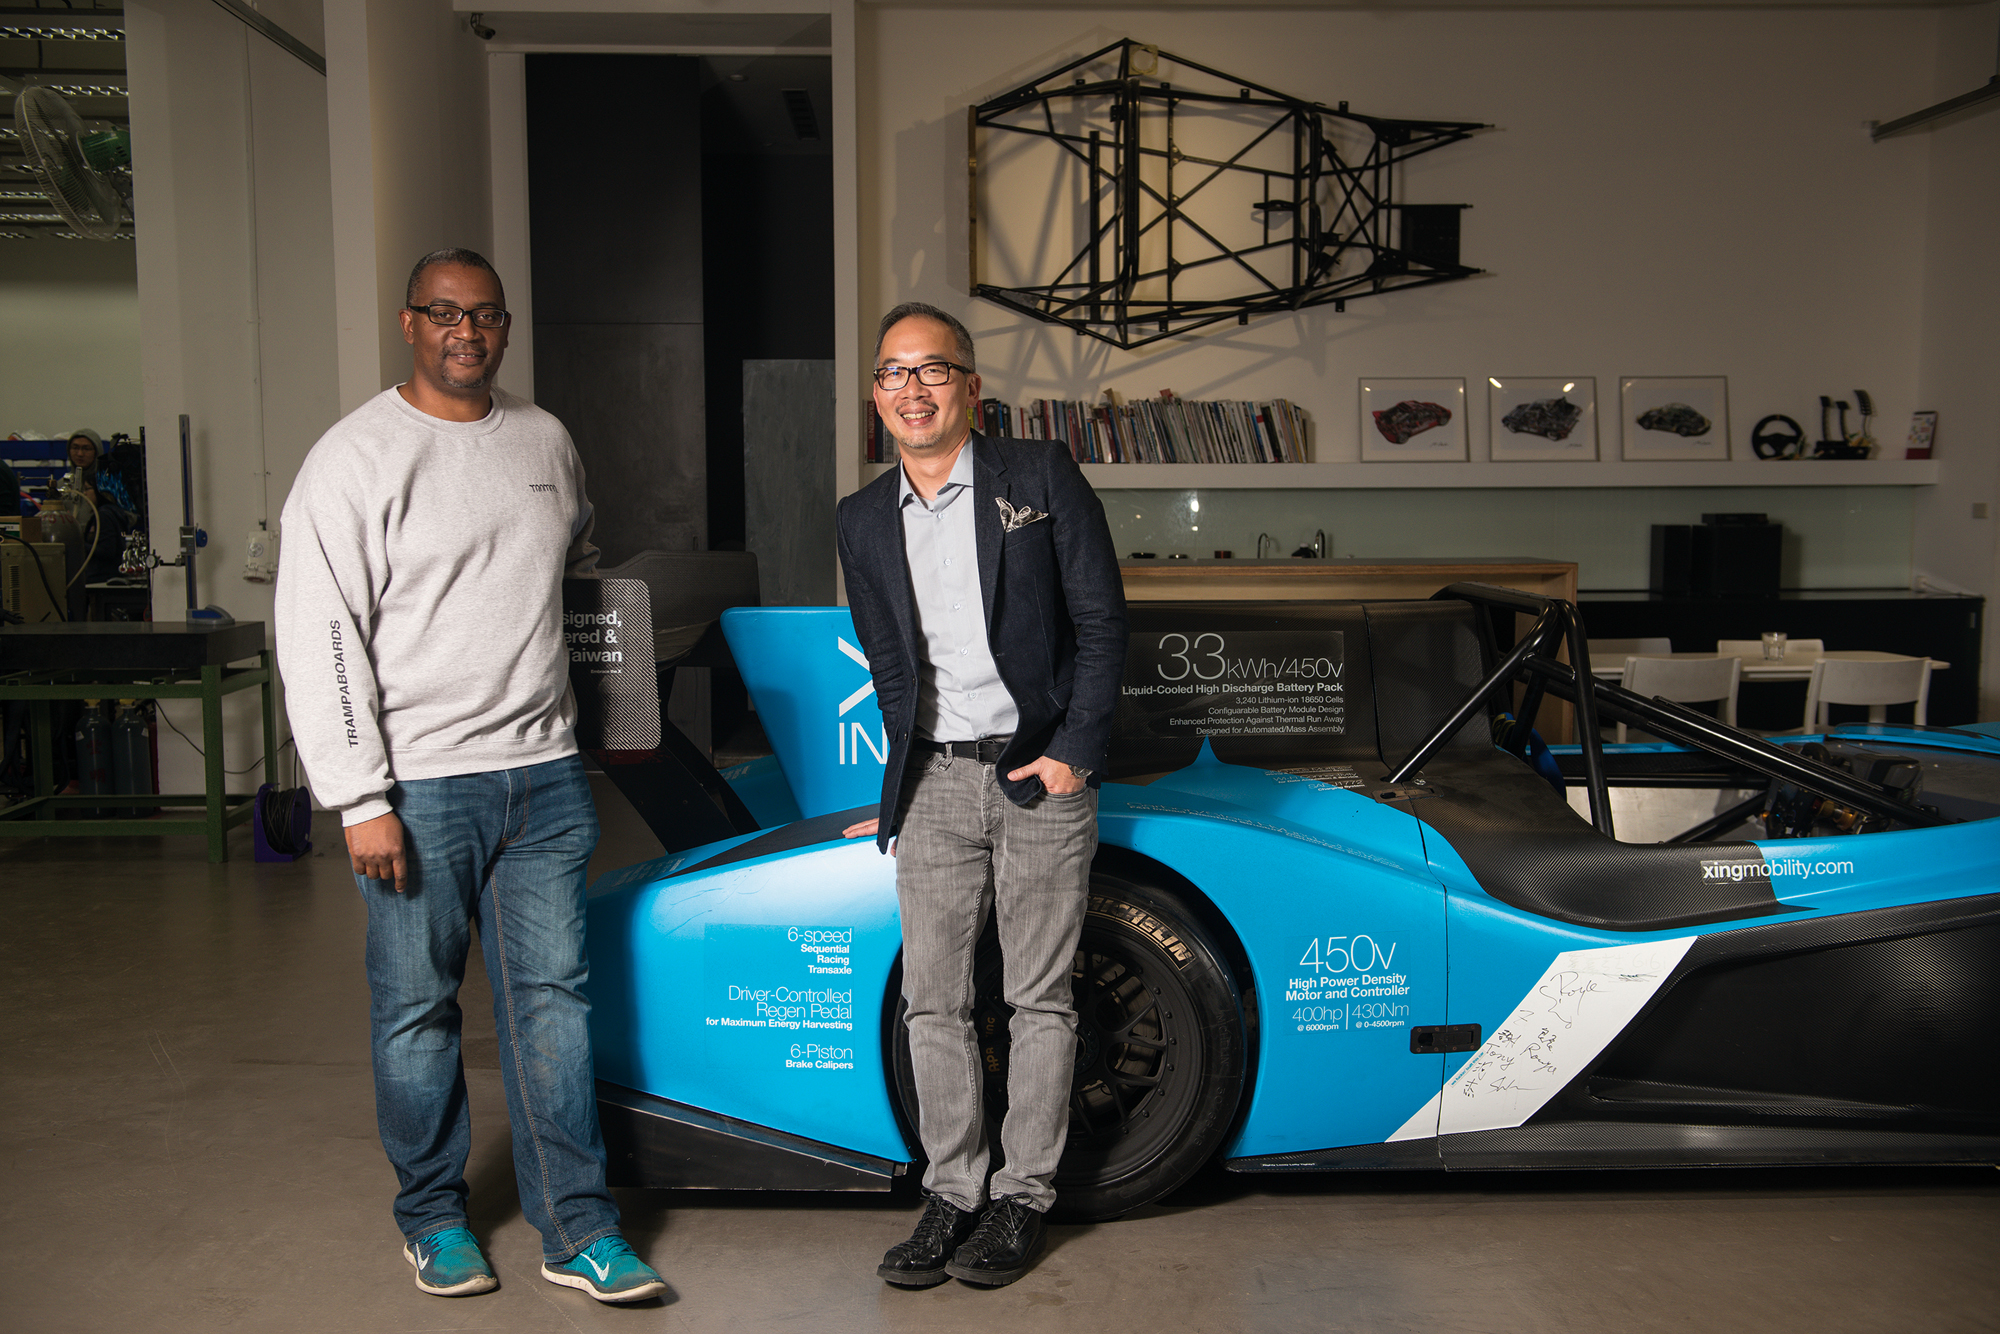 Royce Hong (right) and Azizi Tucker (left), Xing Mobility's cofounders, come from very different professional backgrounds, but have assembled an outstanding team. (photo by Chuang Kung-ju)